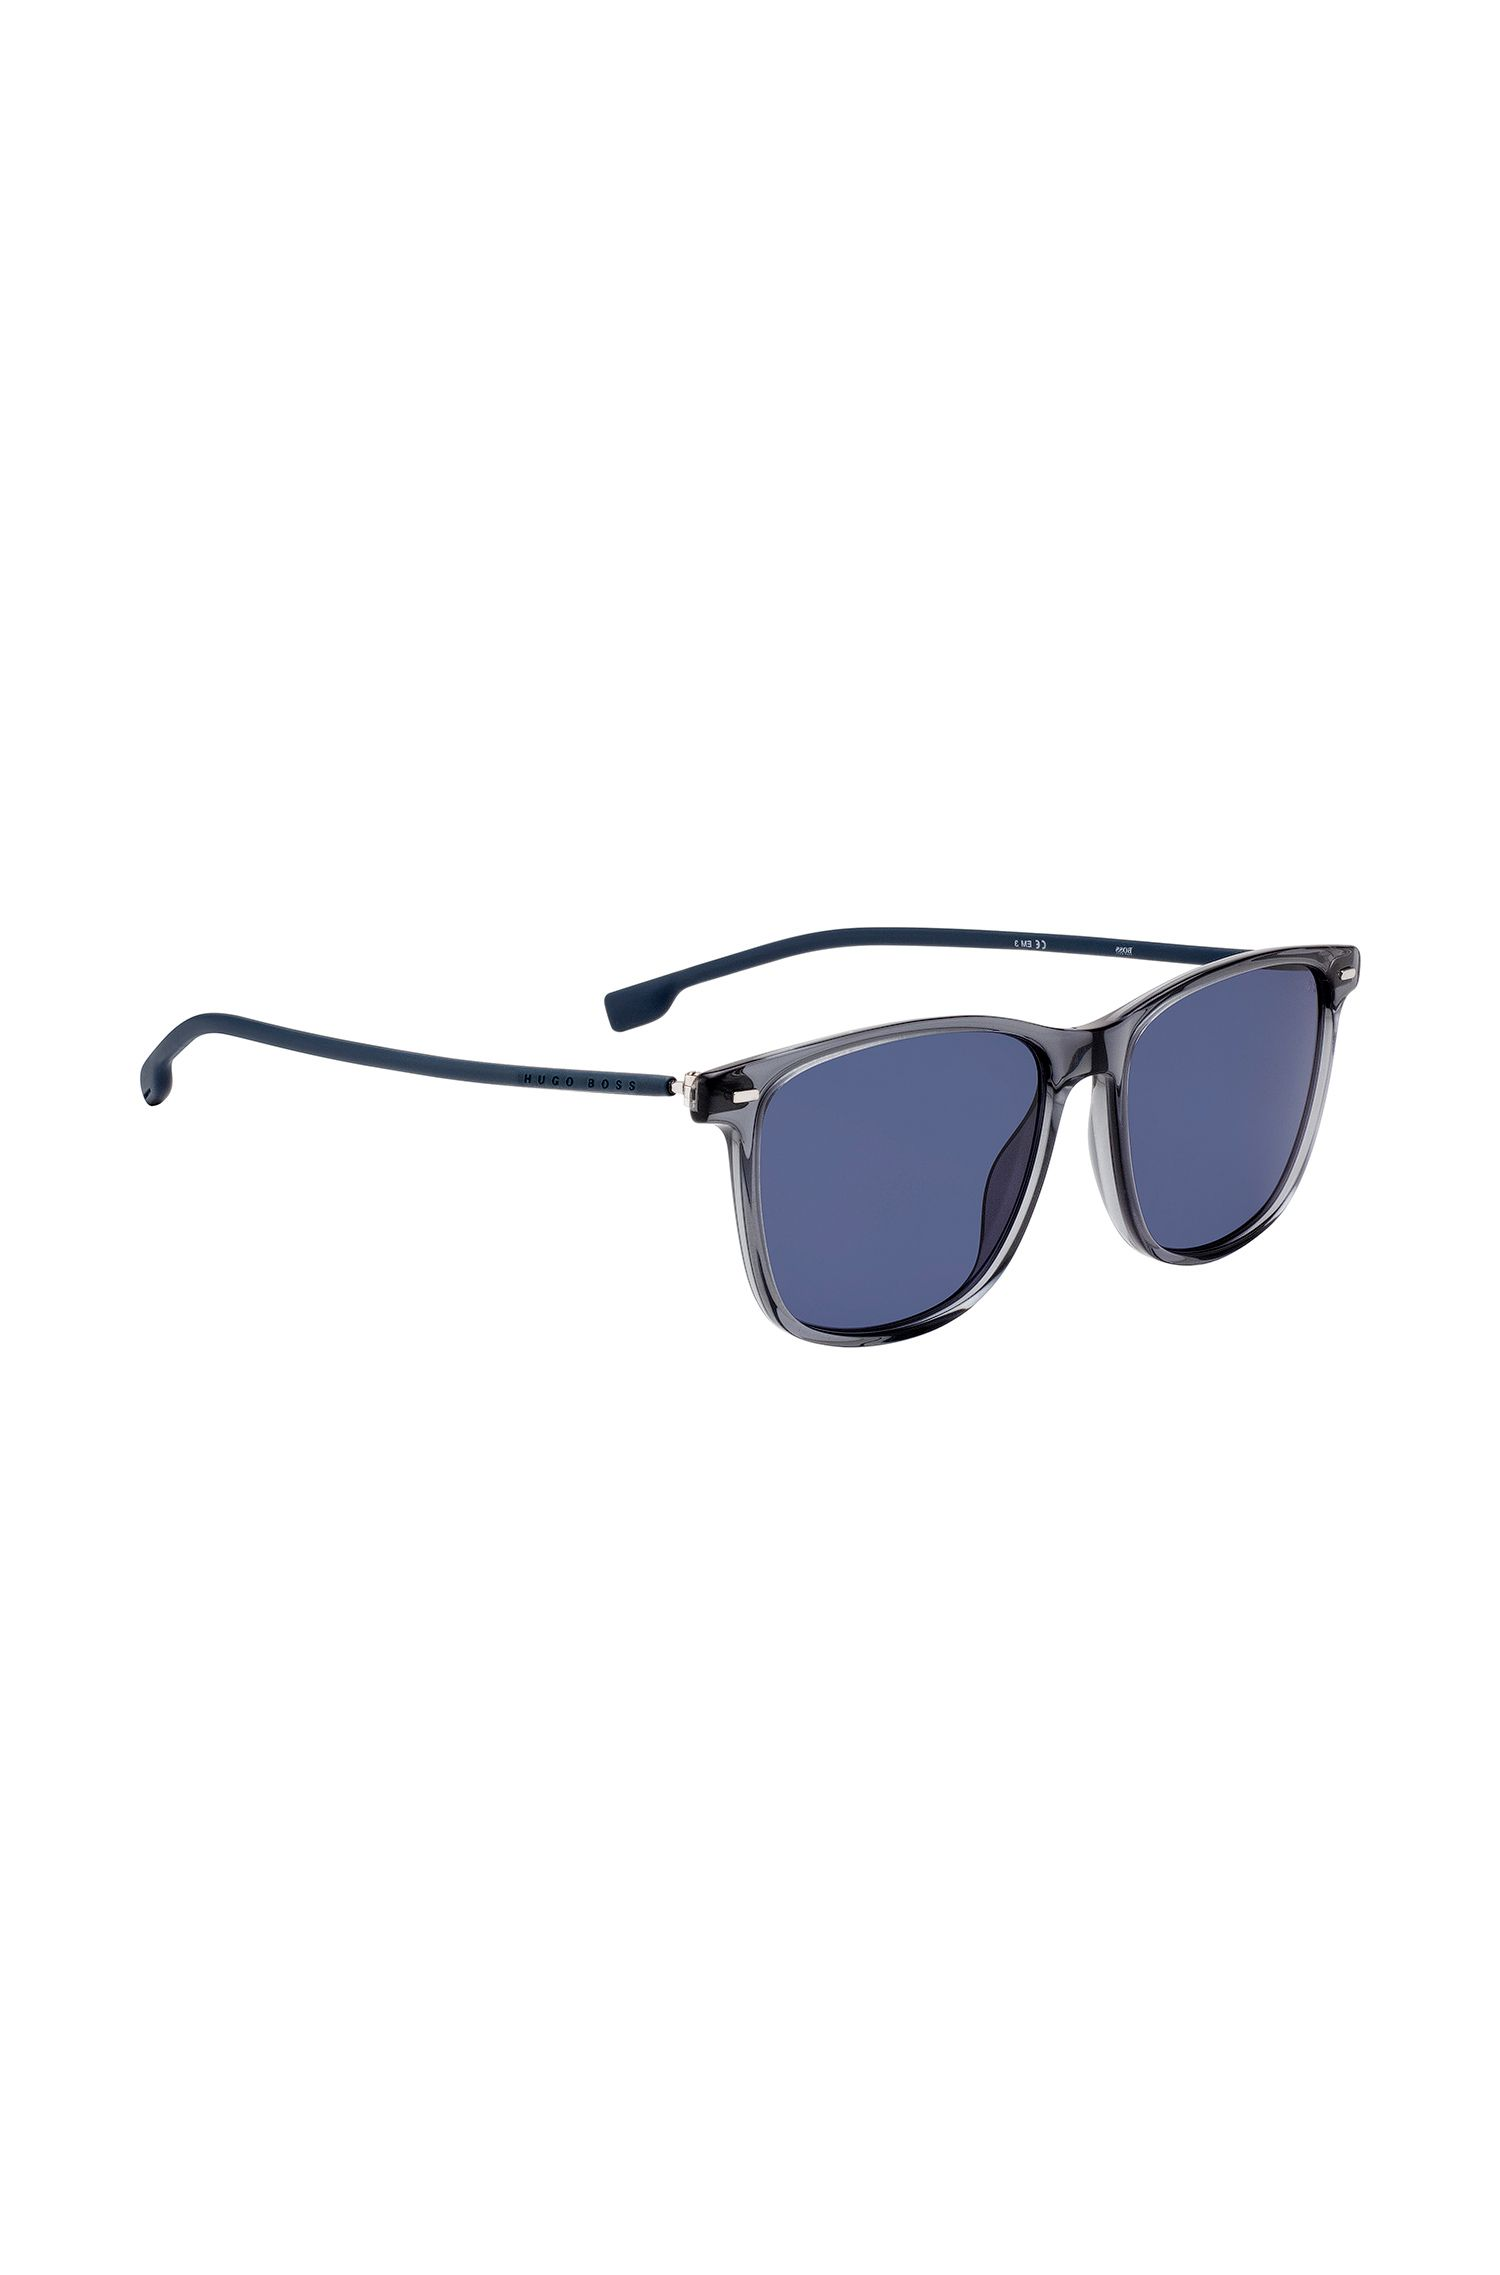 Gray acetate sunglasses with steel and rubber temples, Assorted-Pre-Pack